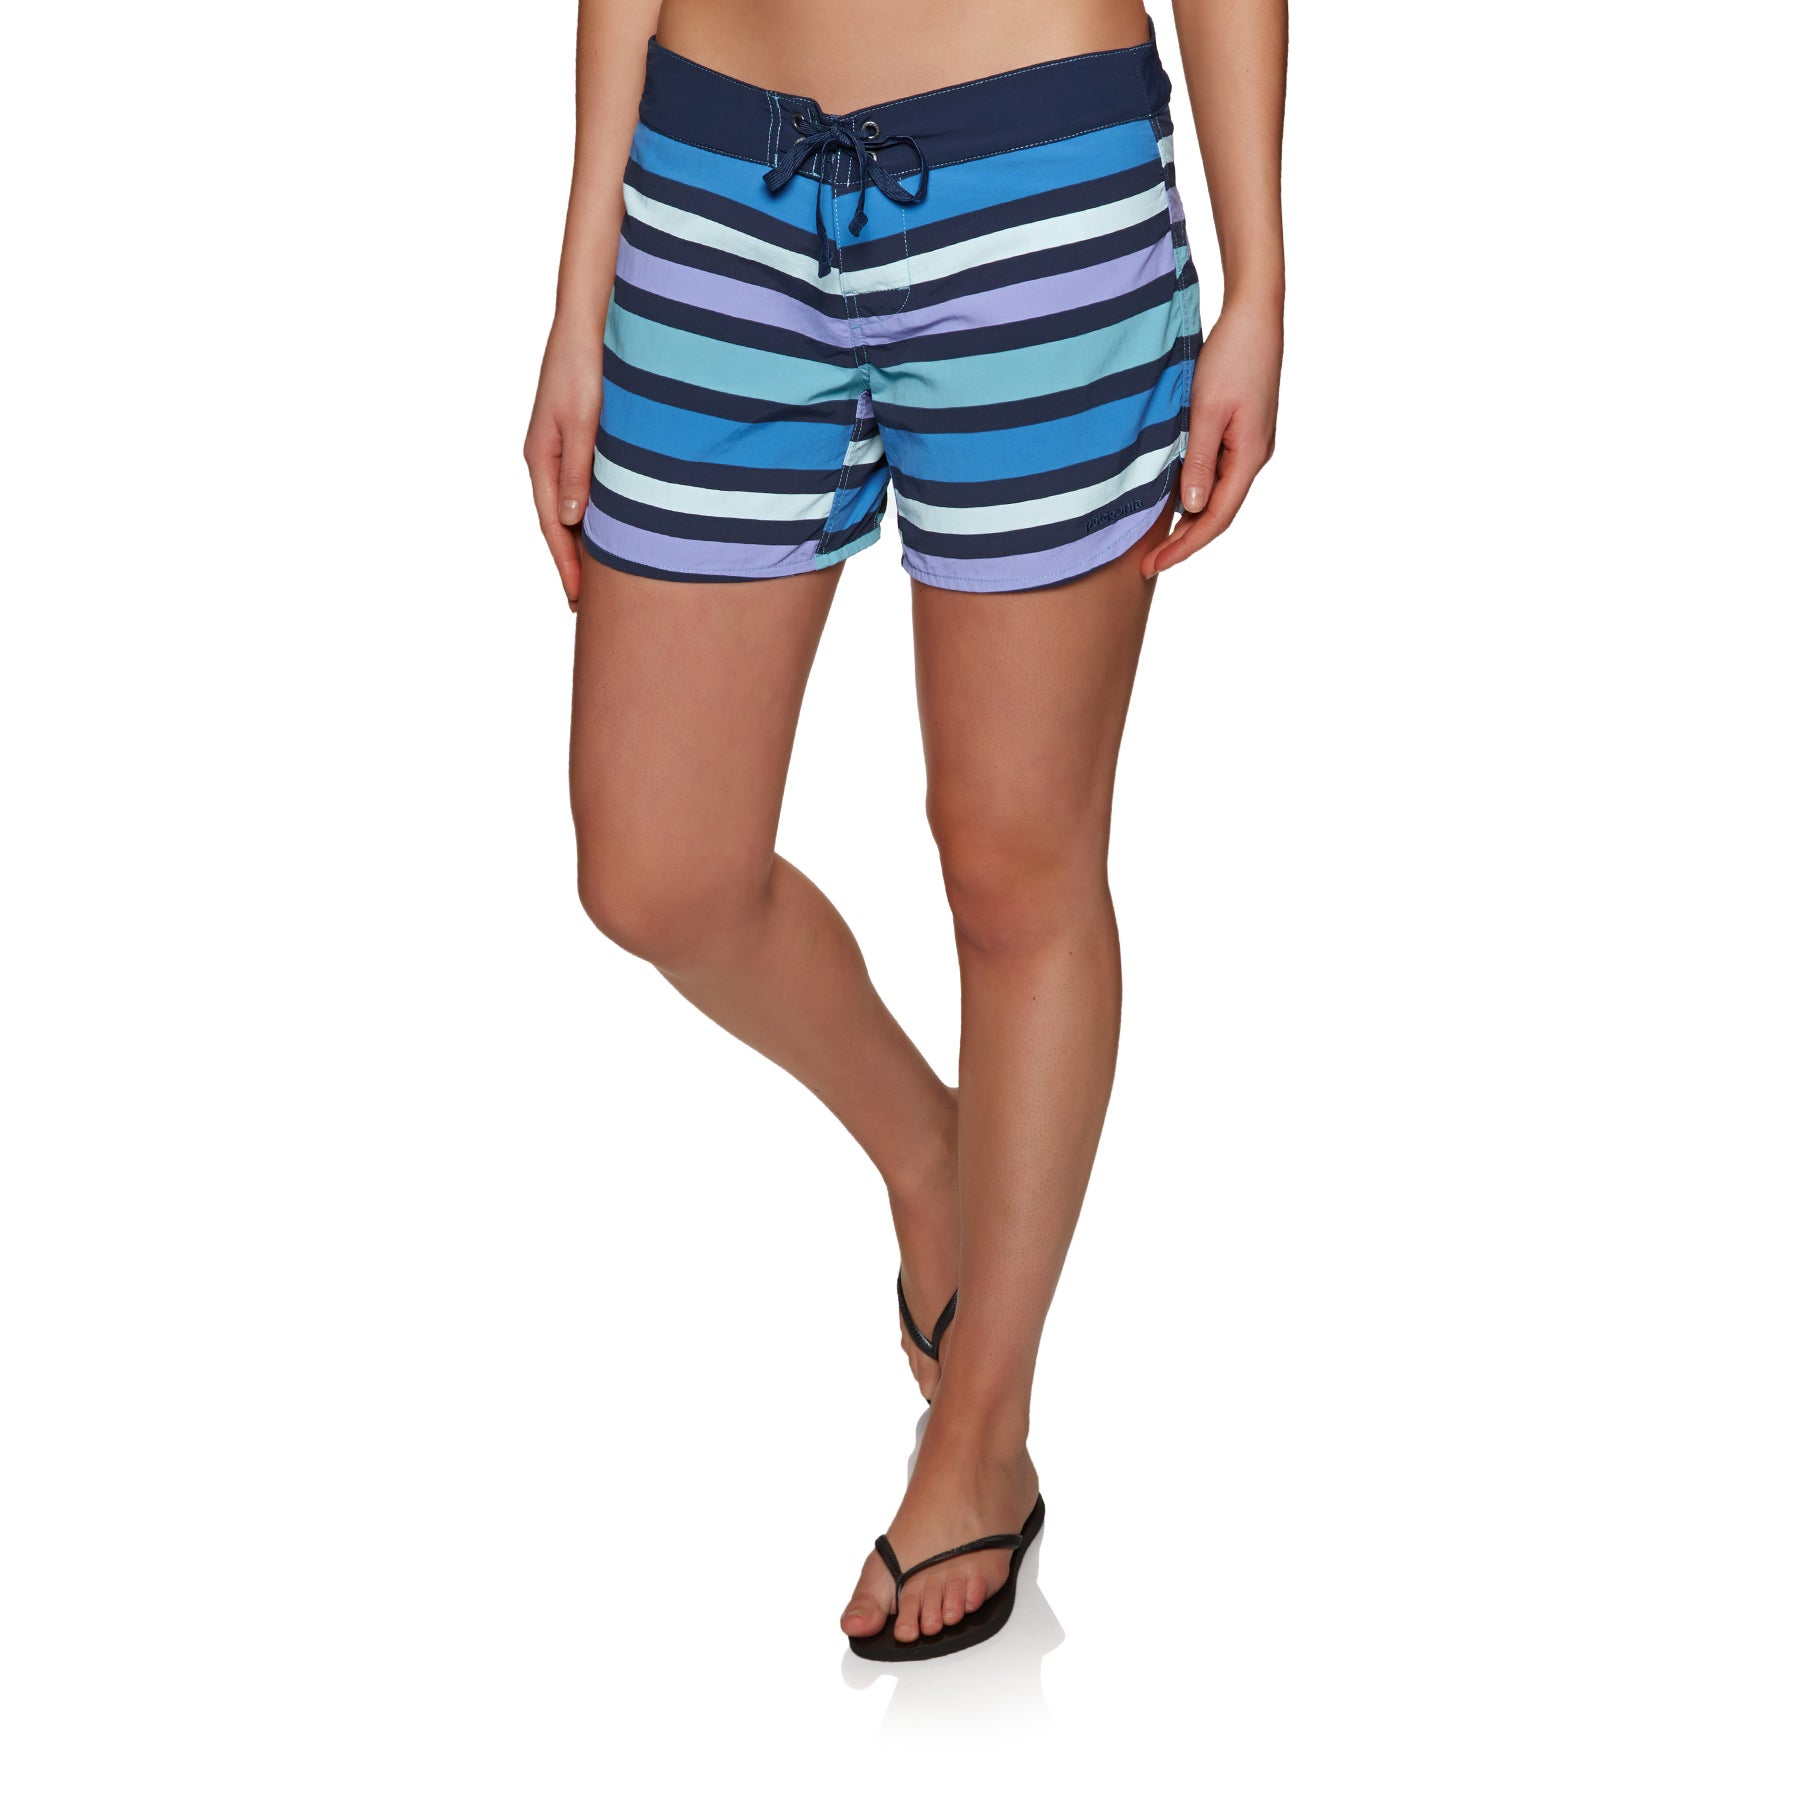 fdd2f038478 Patagonia Wavefarer 5 Inch Womens Boardshorts available from Surfdome